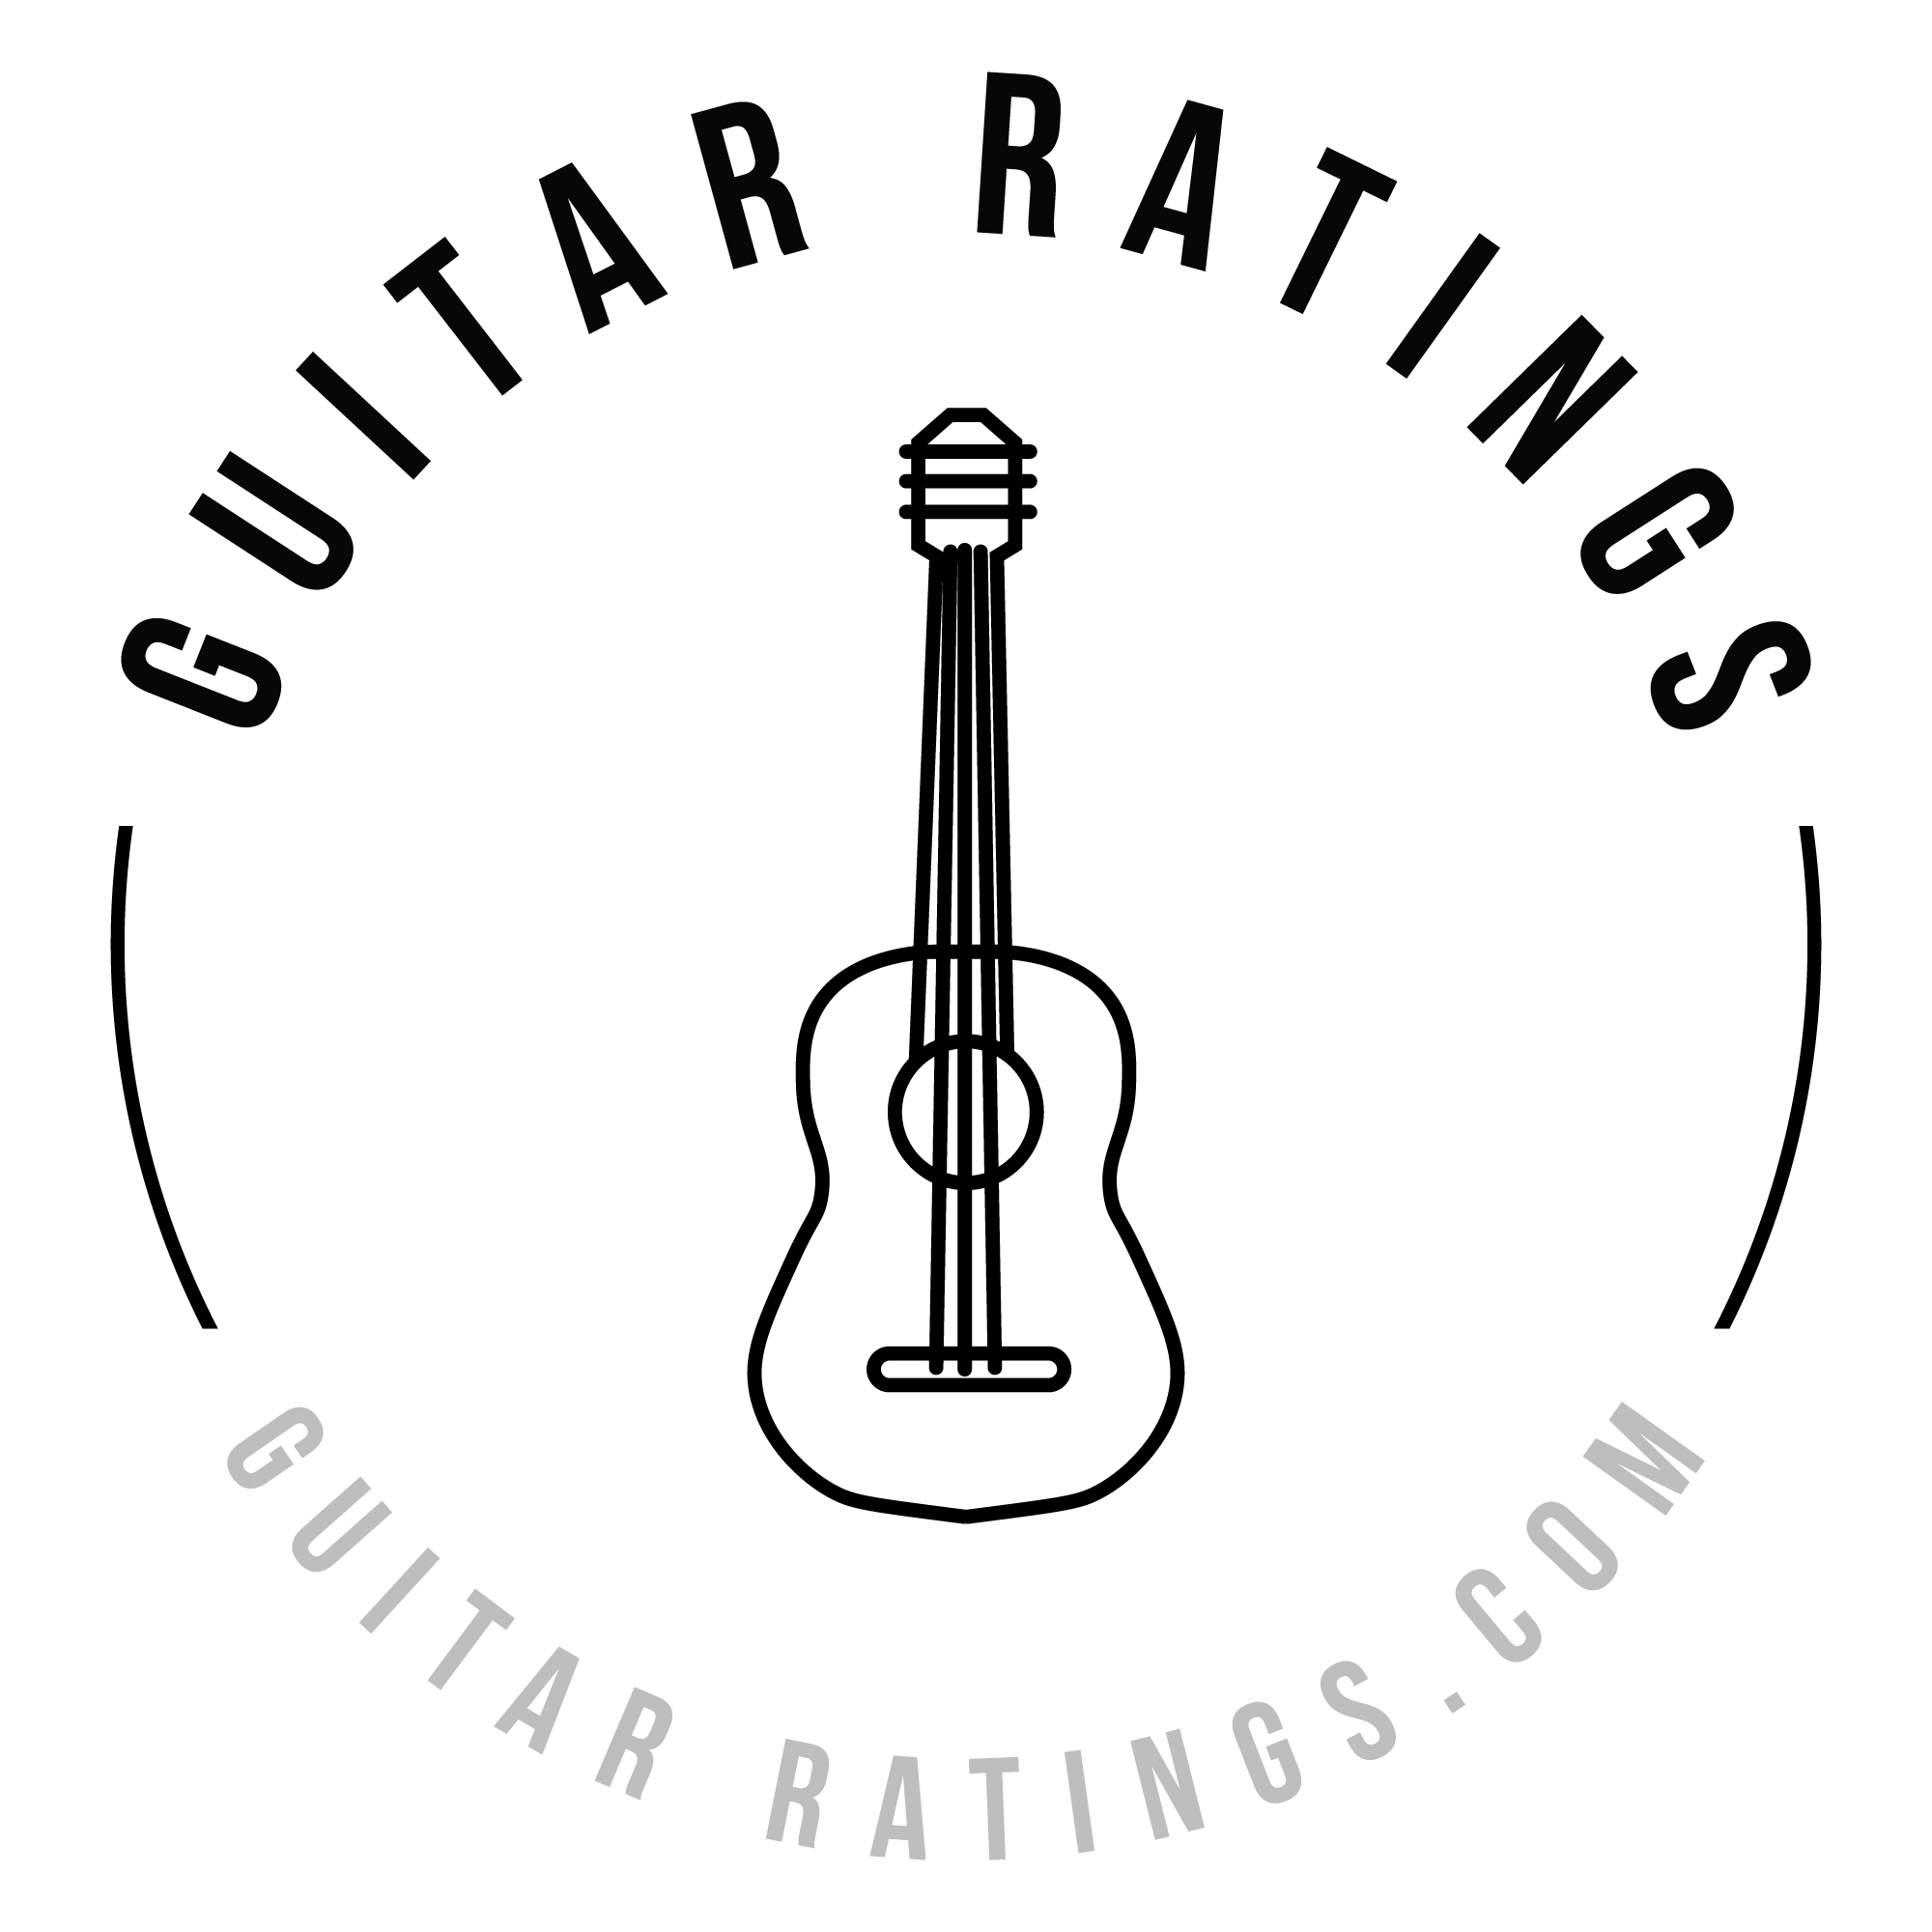 Guitar Ratings